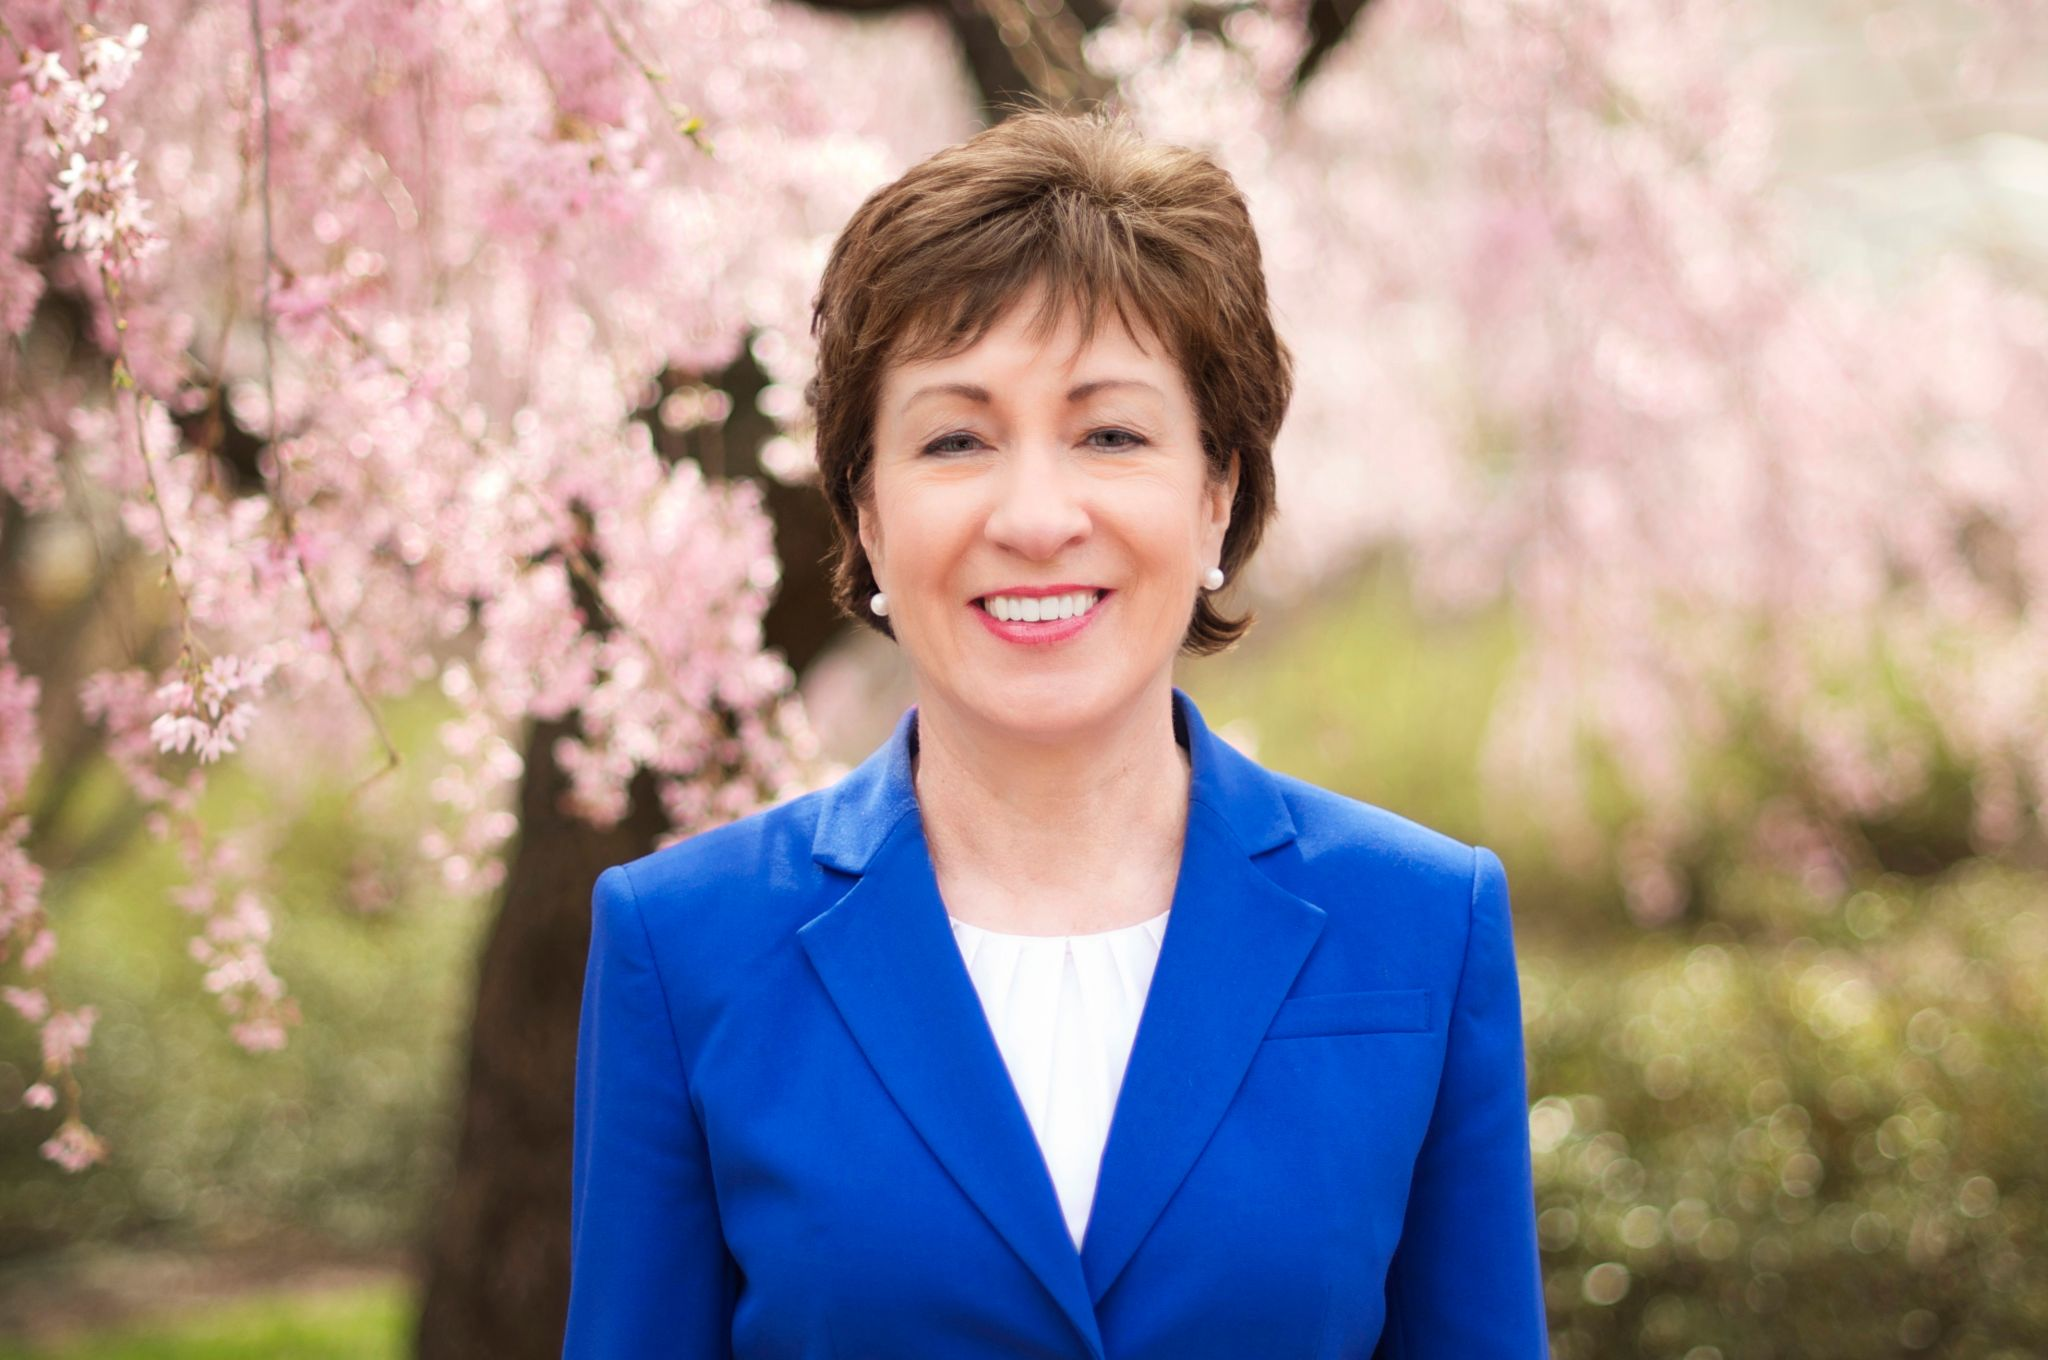 Republican Sen Susan Collins a key vote in the coming Supreme Court confirmation fight said Sunday she would not support a nominee hostile to the